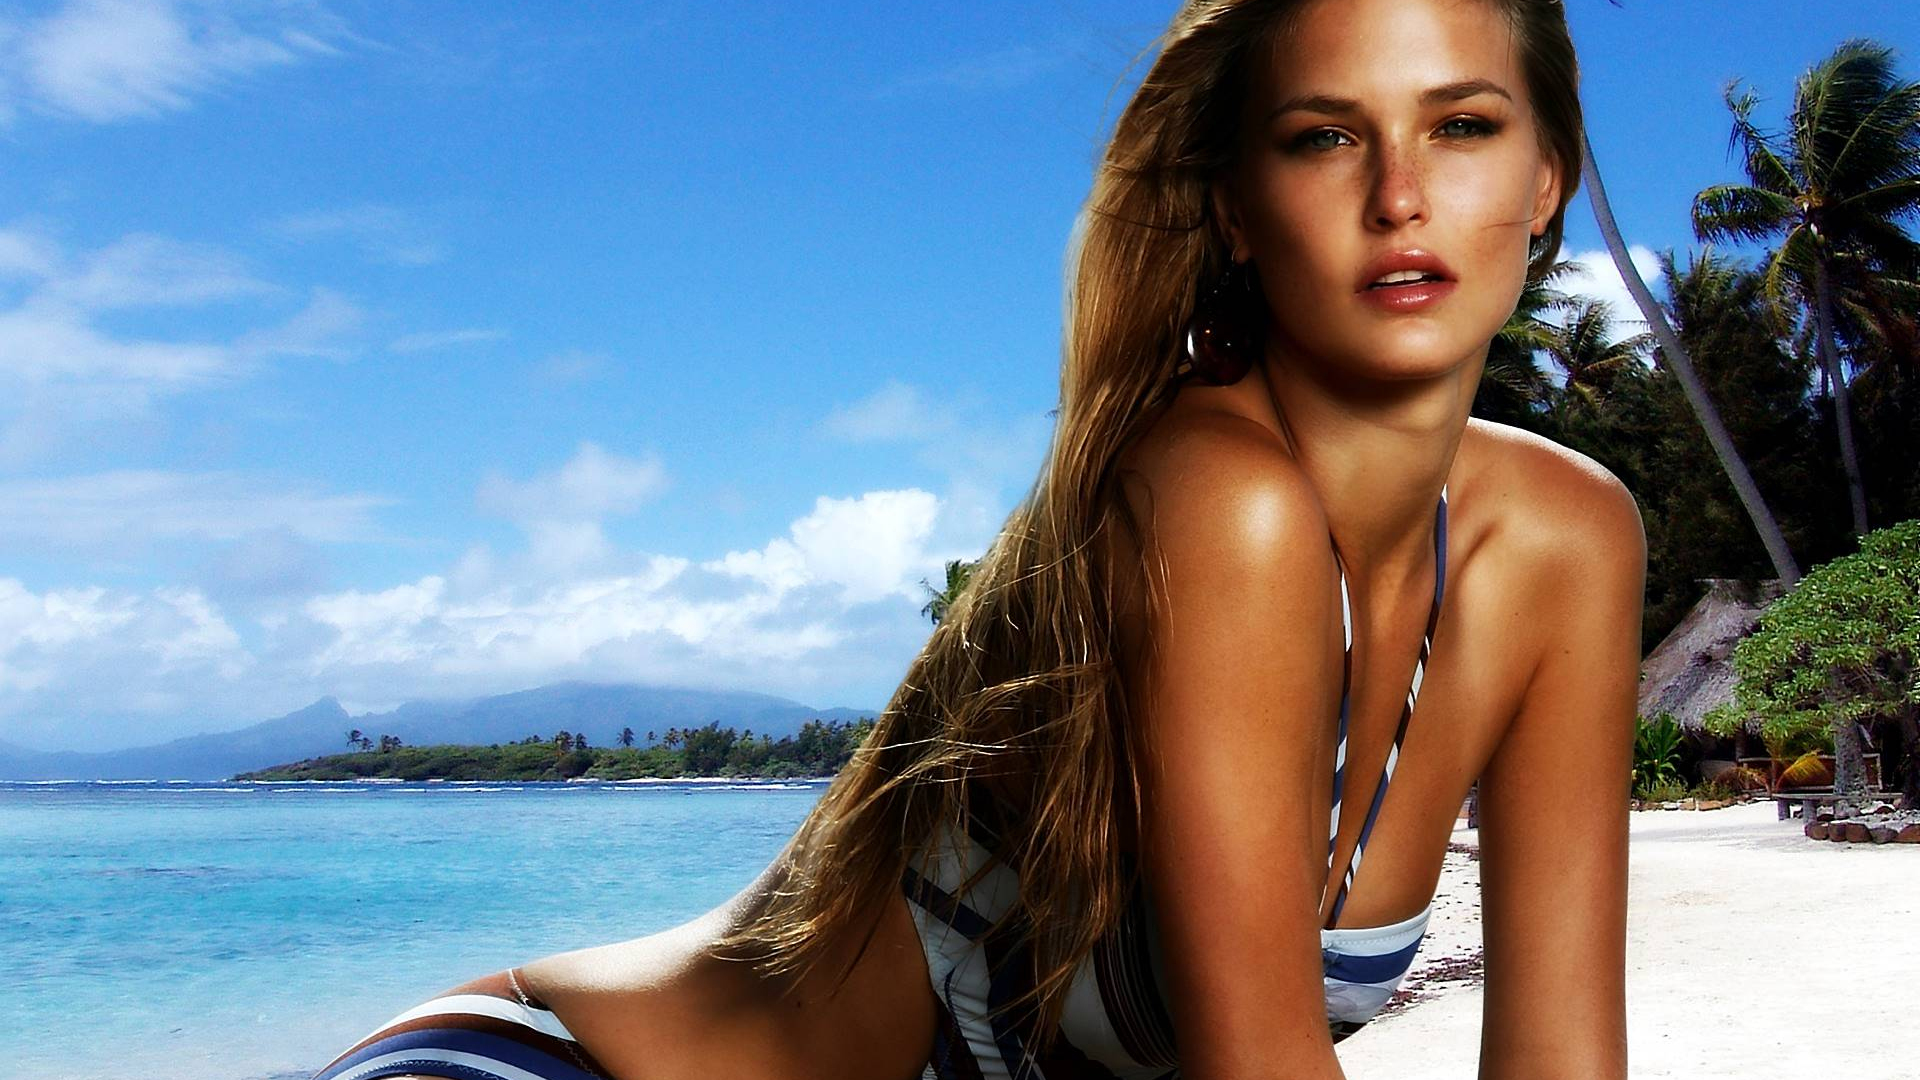 Naked Pictures Of Bar Refaeli 88